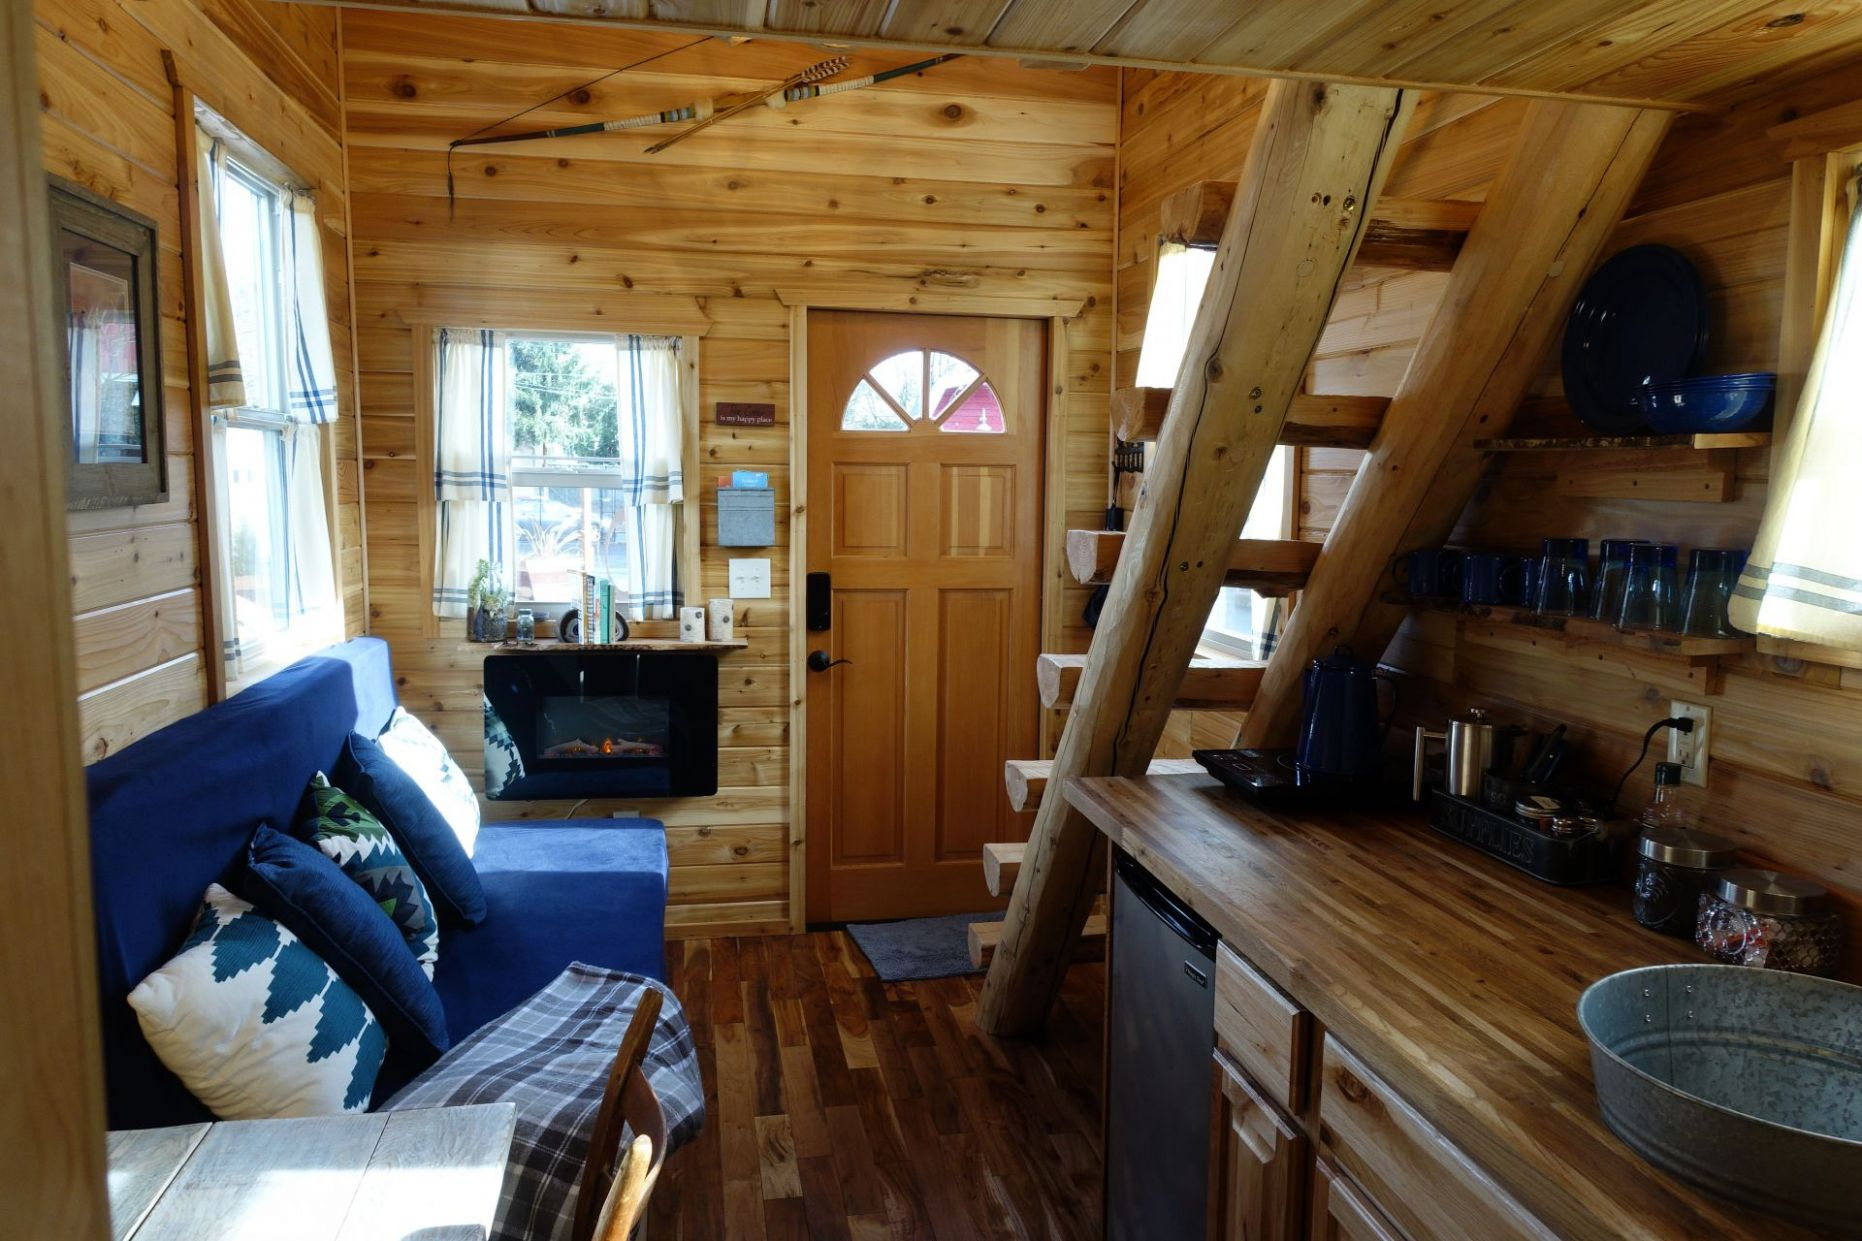 Tiny Log Cabin On Wheels is Available for Rent In Portland, Oregon